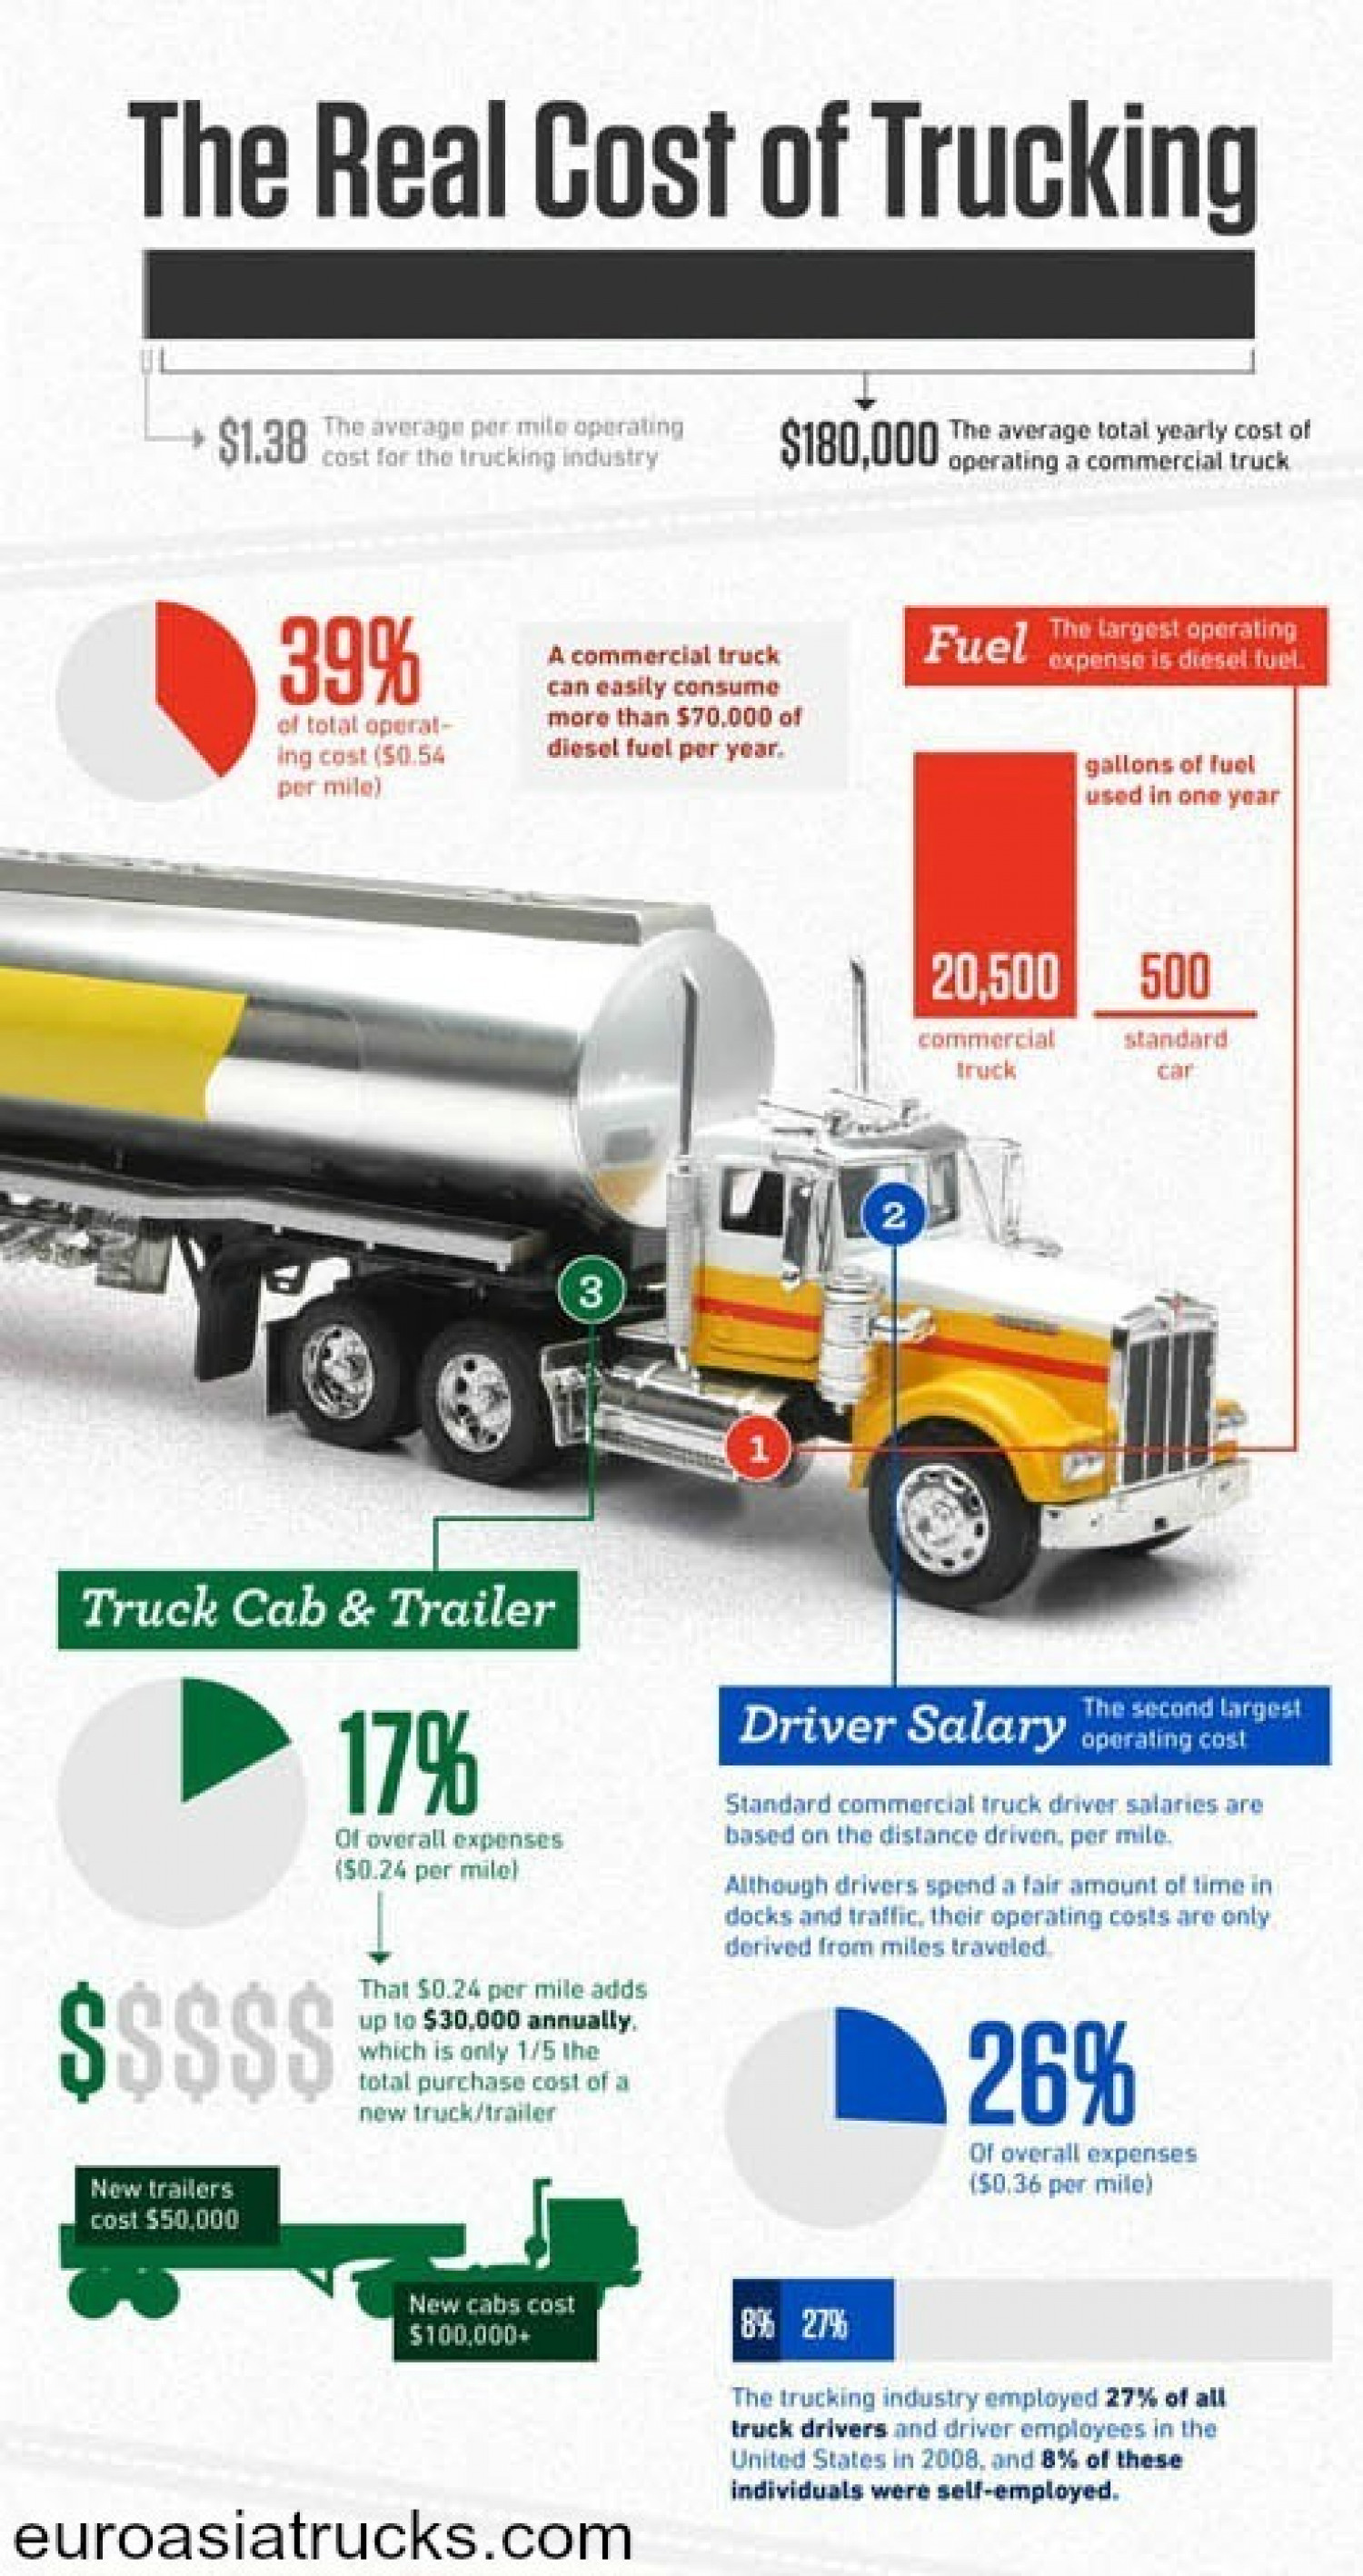 The Real Cost of Trucking Infographic